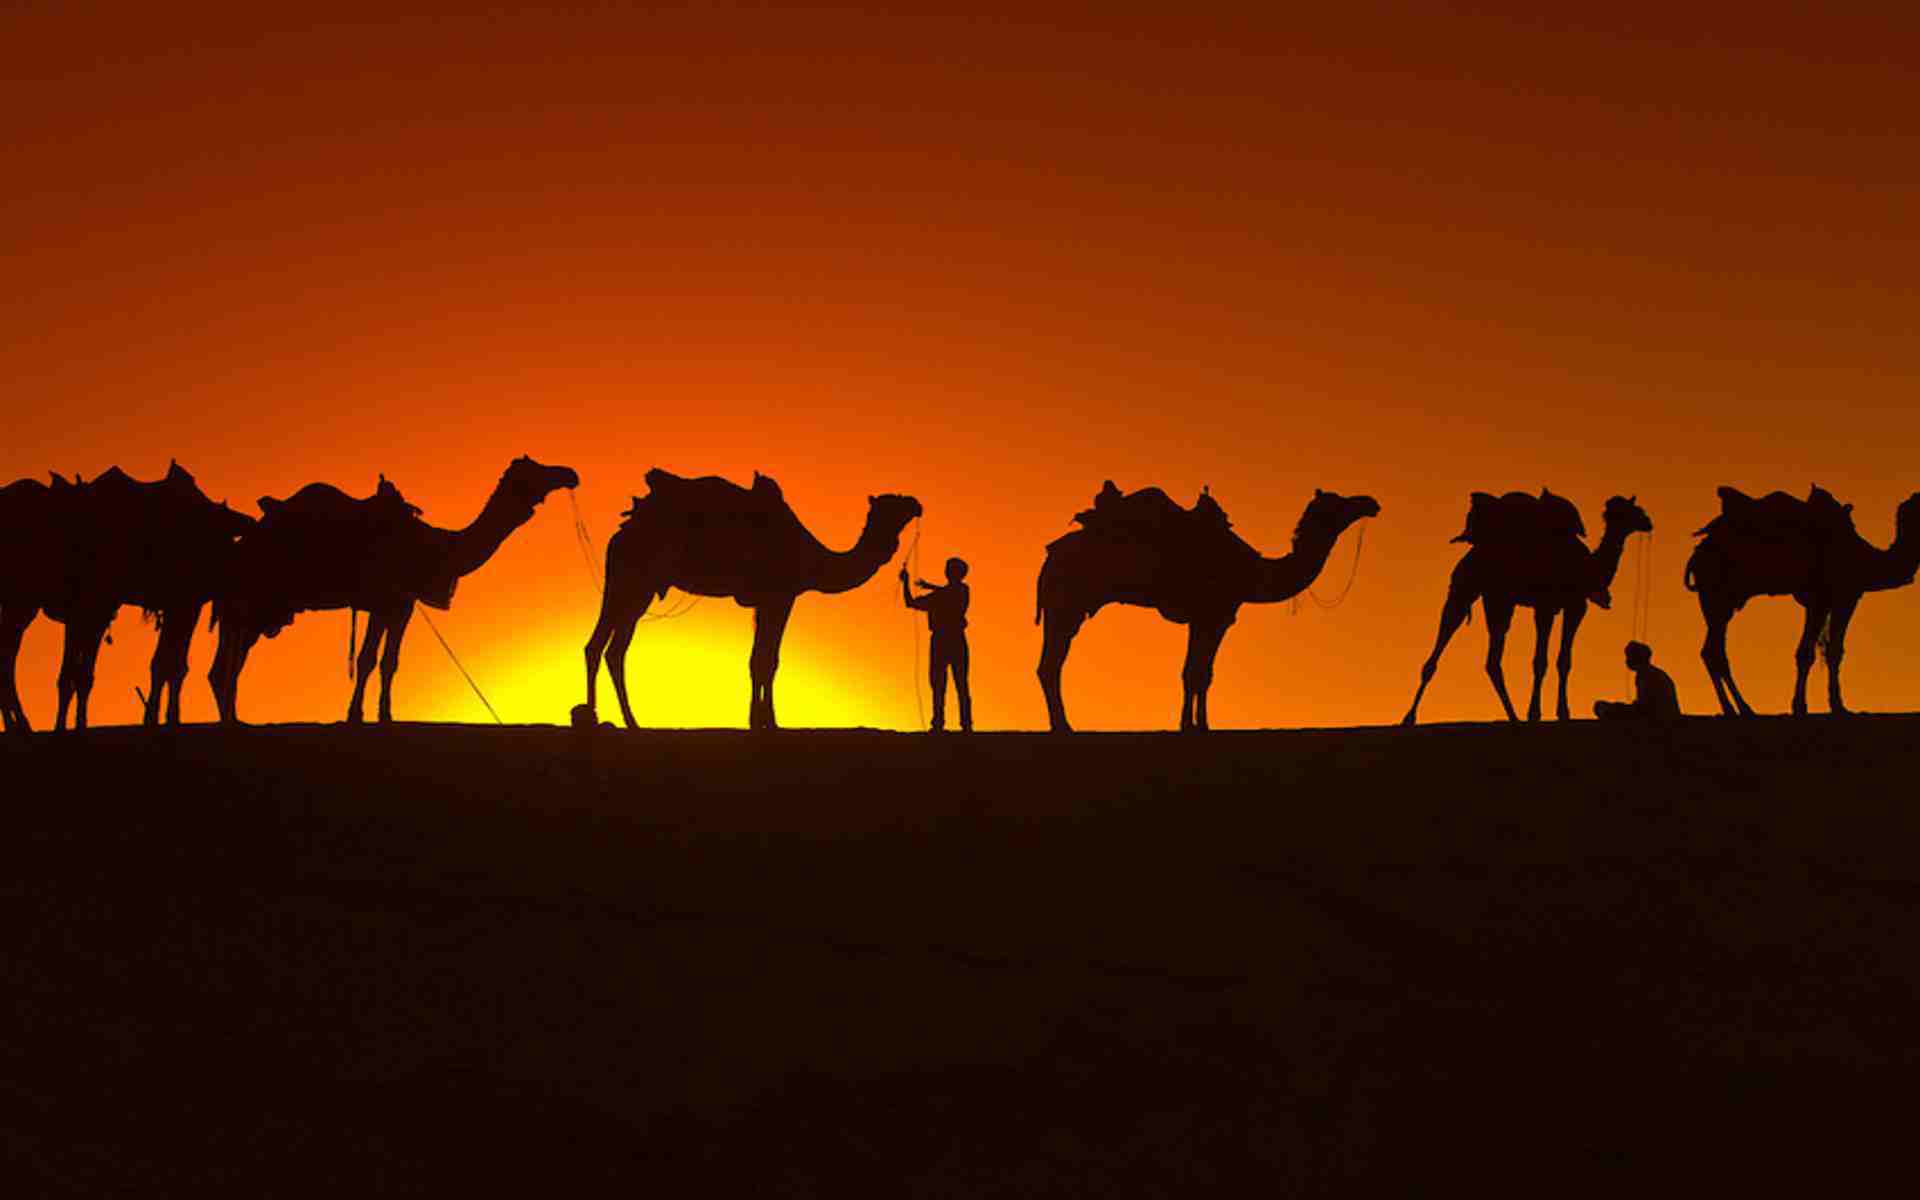 DOWNLOAD: Camel Wallpaper free picture 2560 x 1600